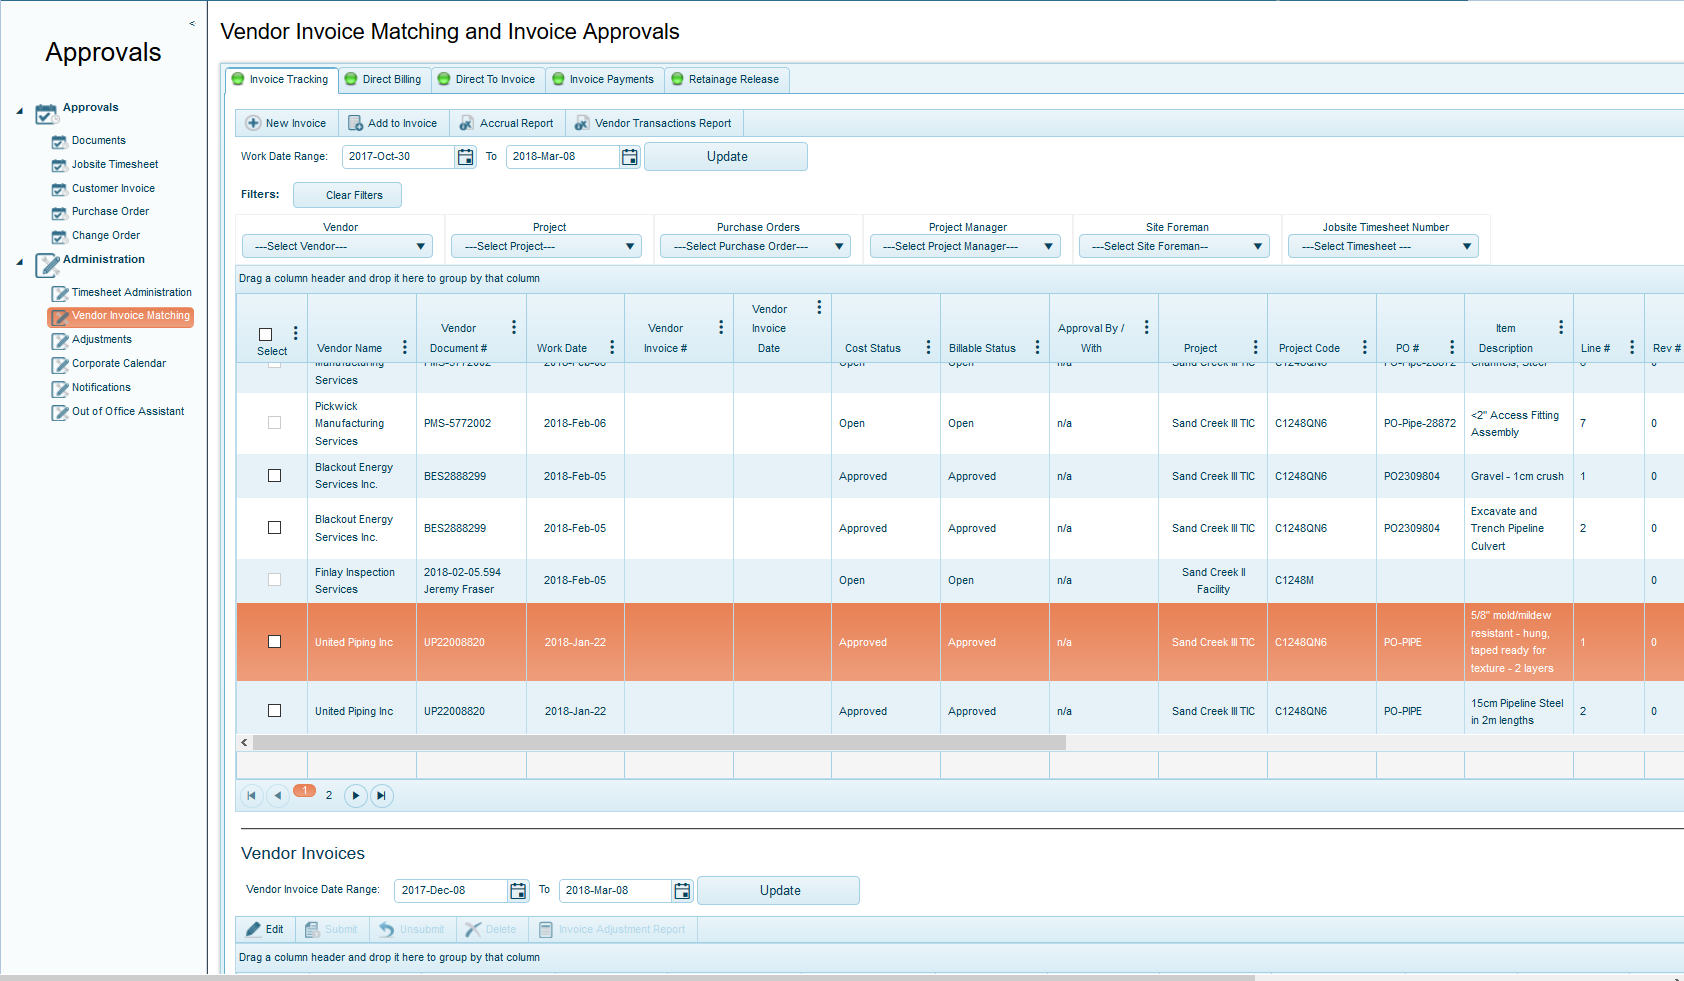 Vendor Invoice Matching and Approval